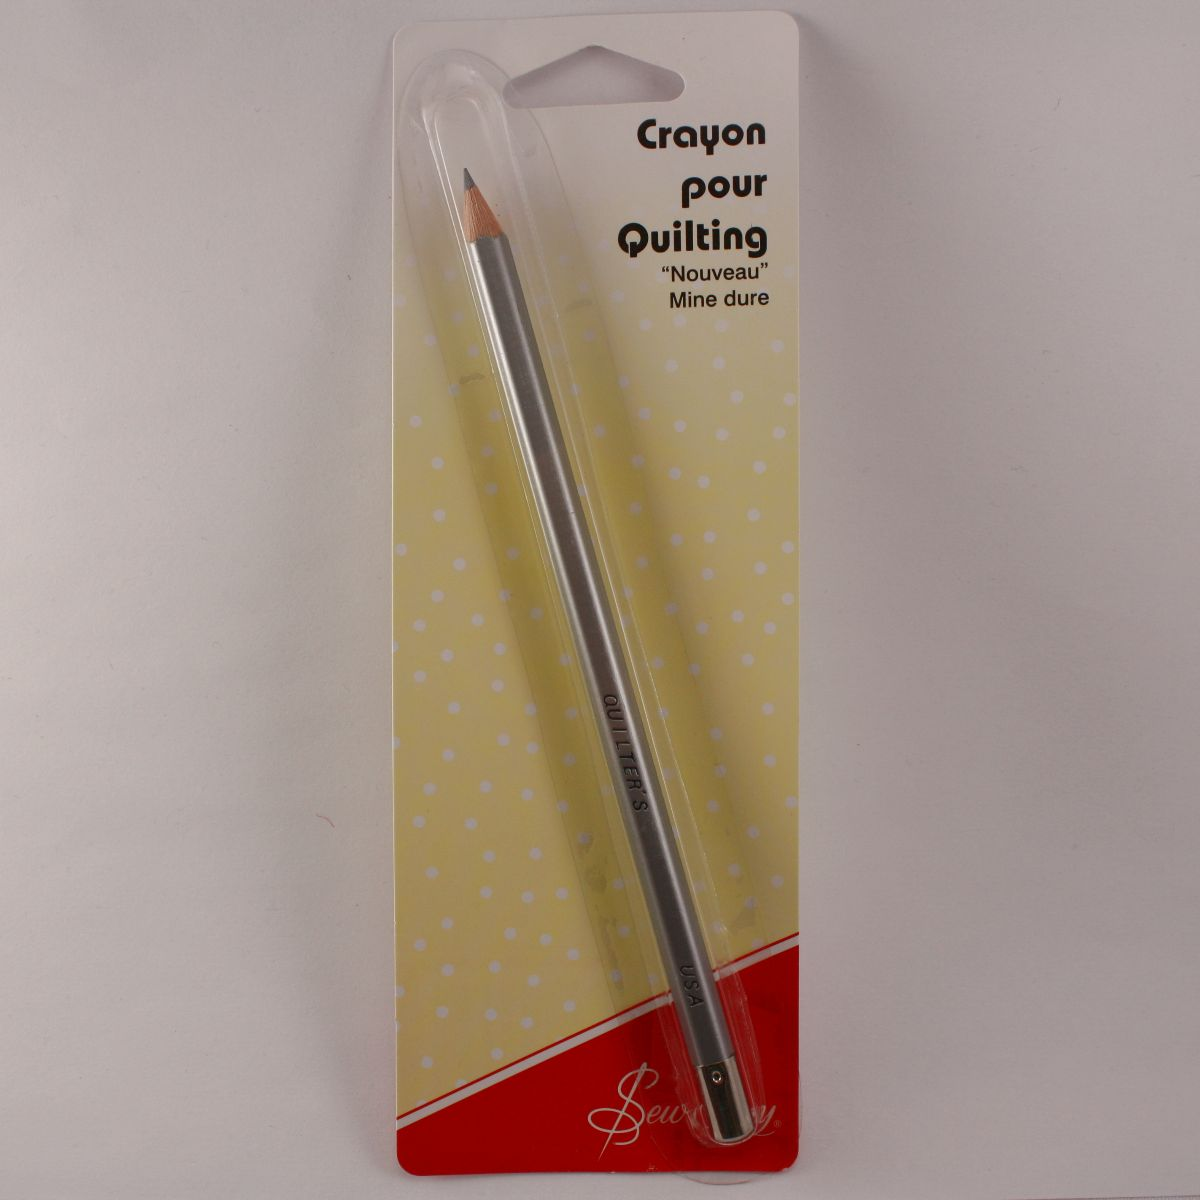 Crayon pour quilting